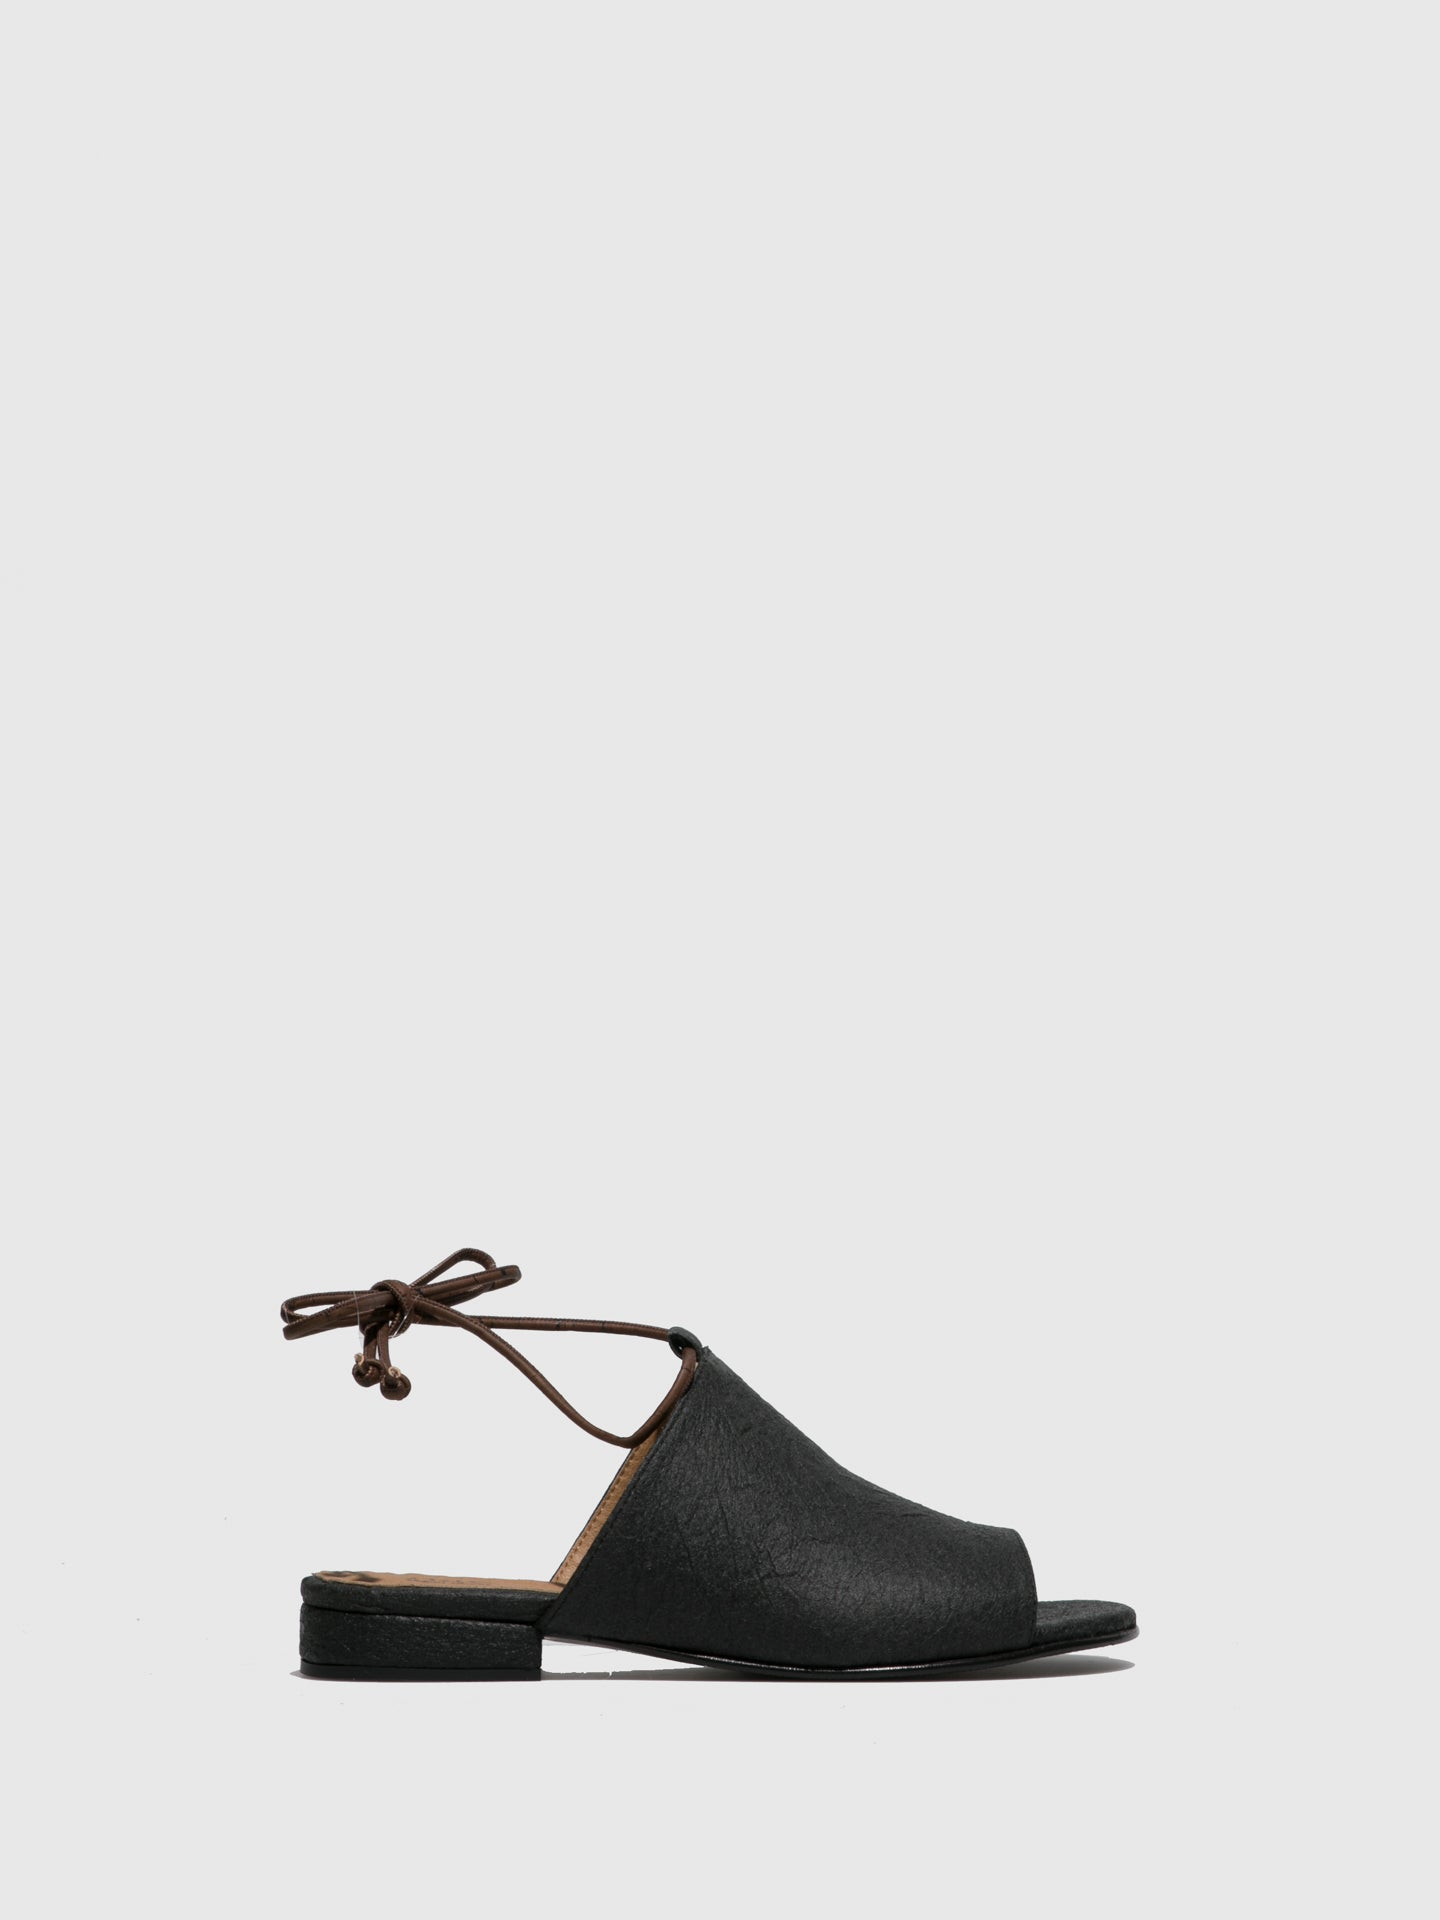 NAE Vegan Shoes Black Lace-up Sandals